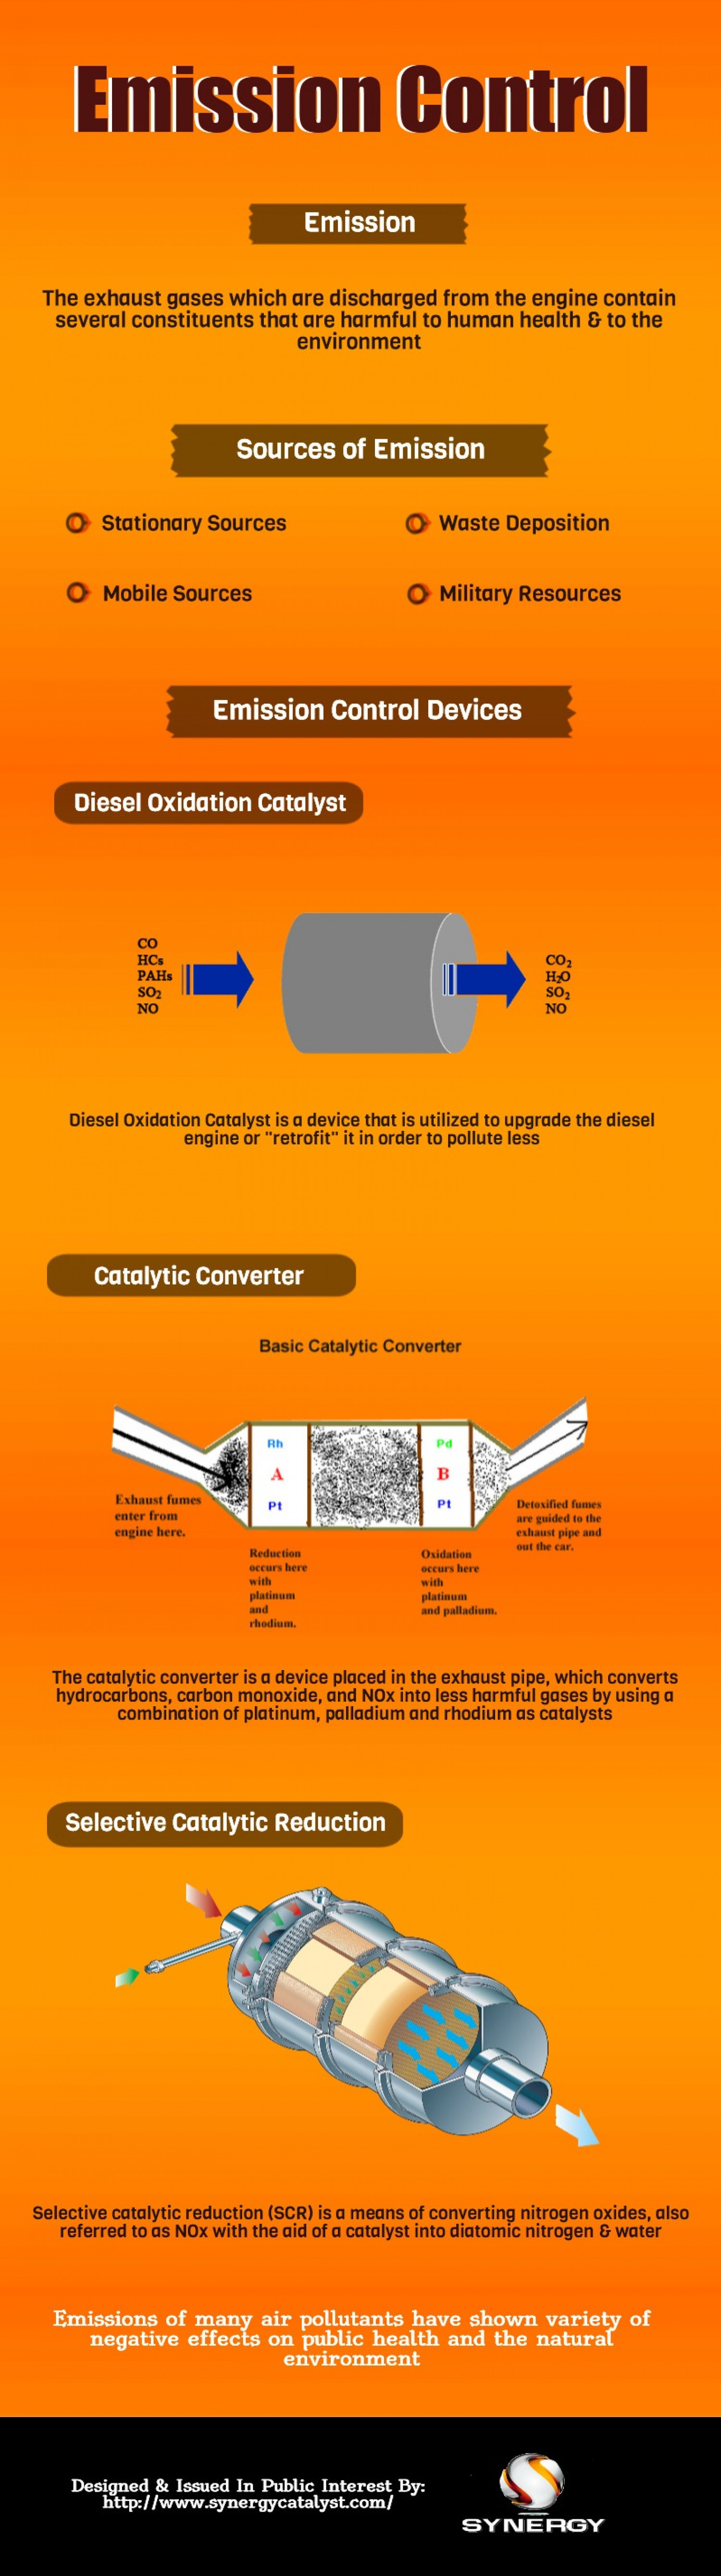 Emission Control Infographic